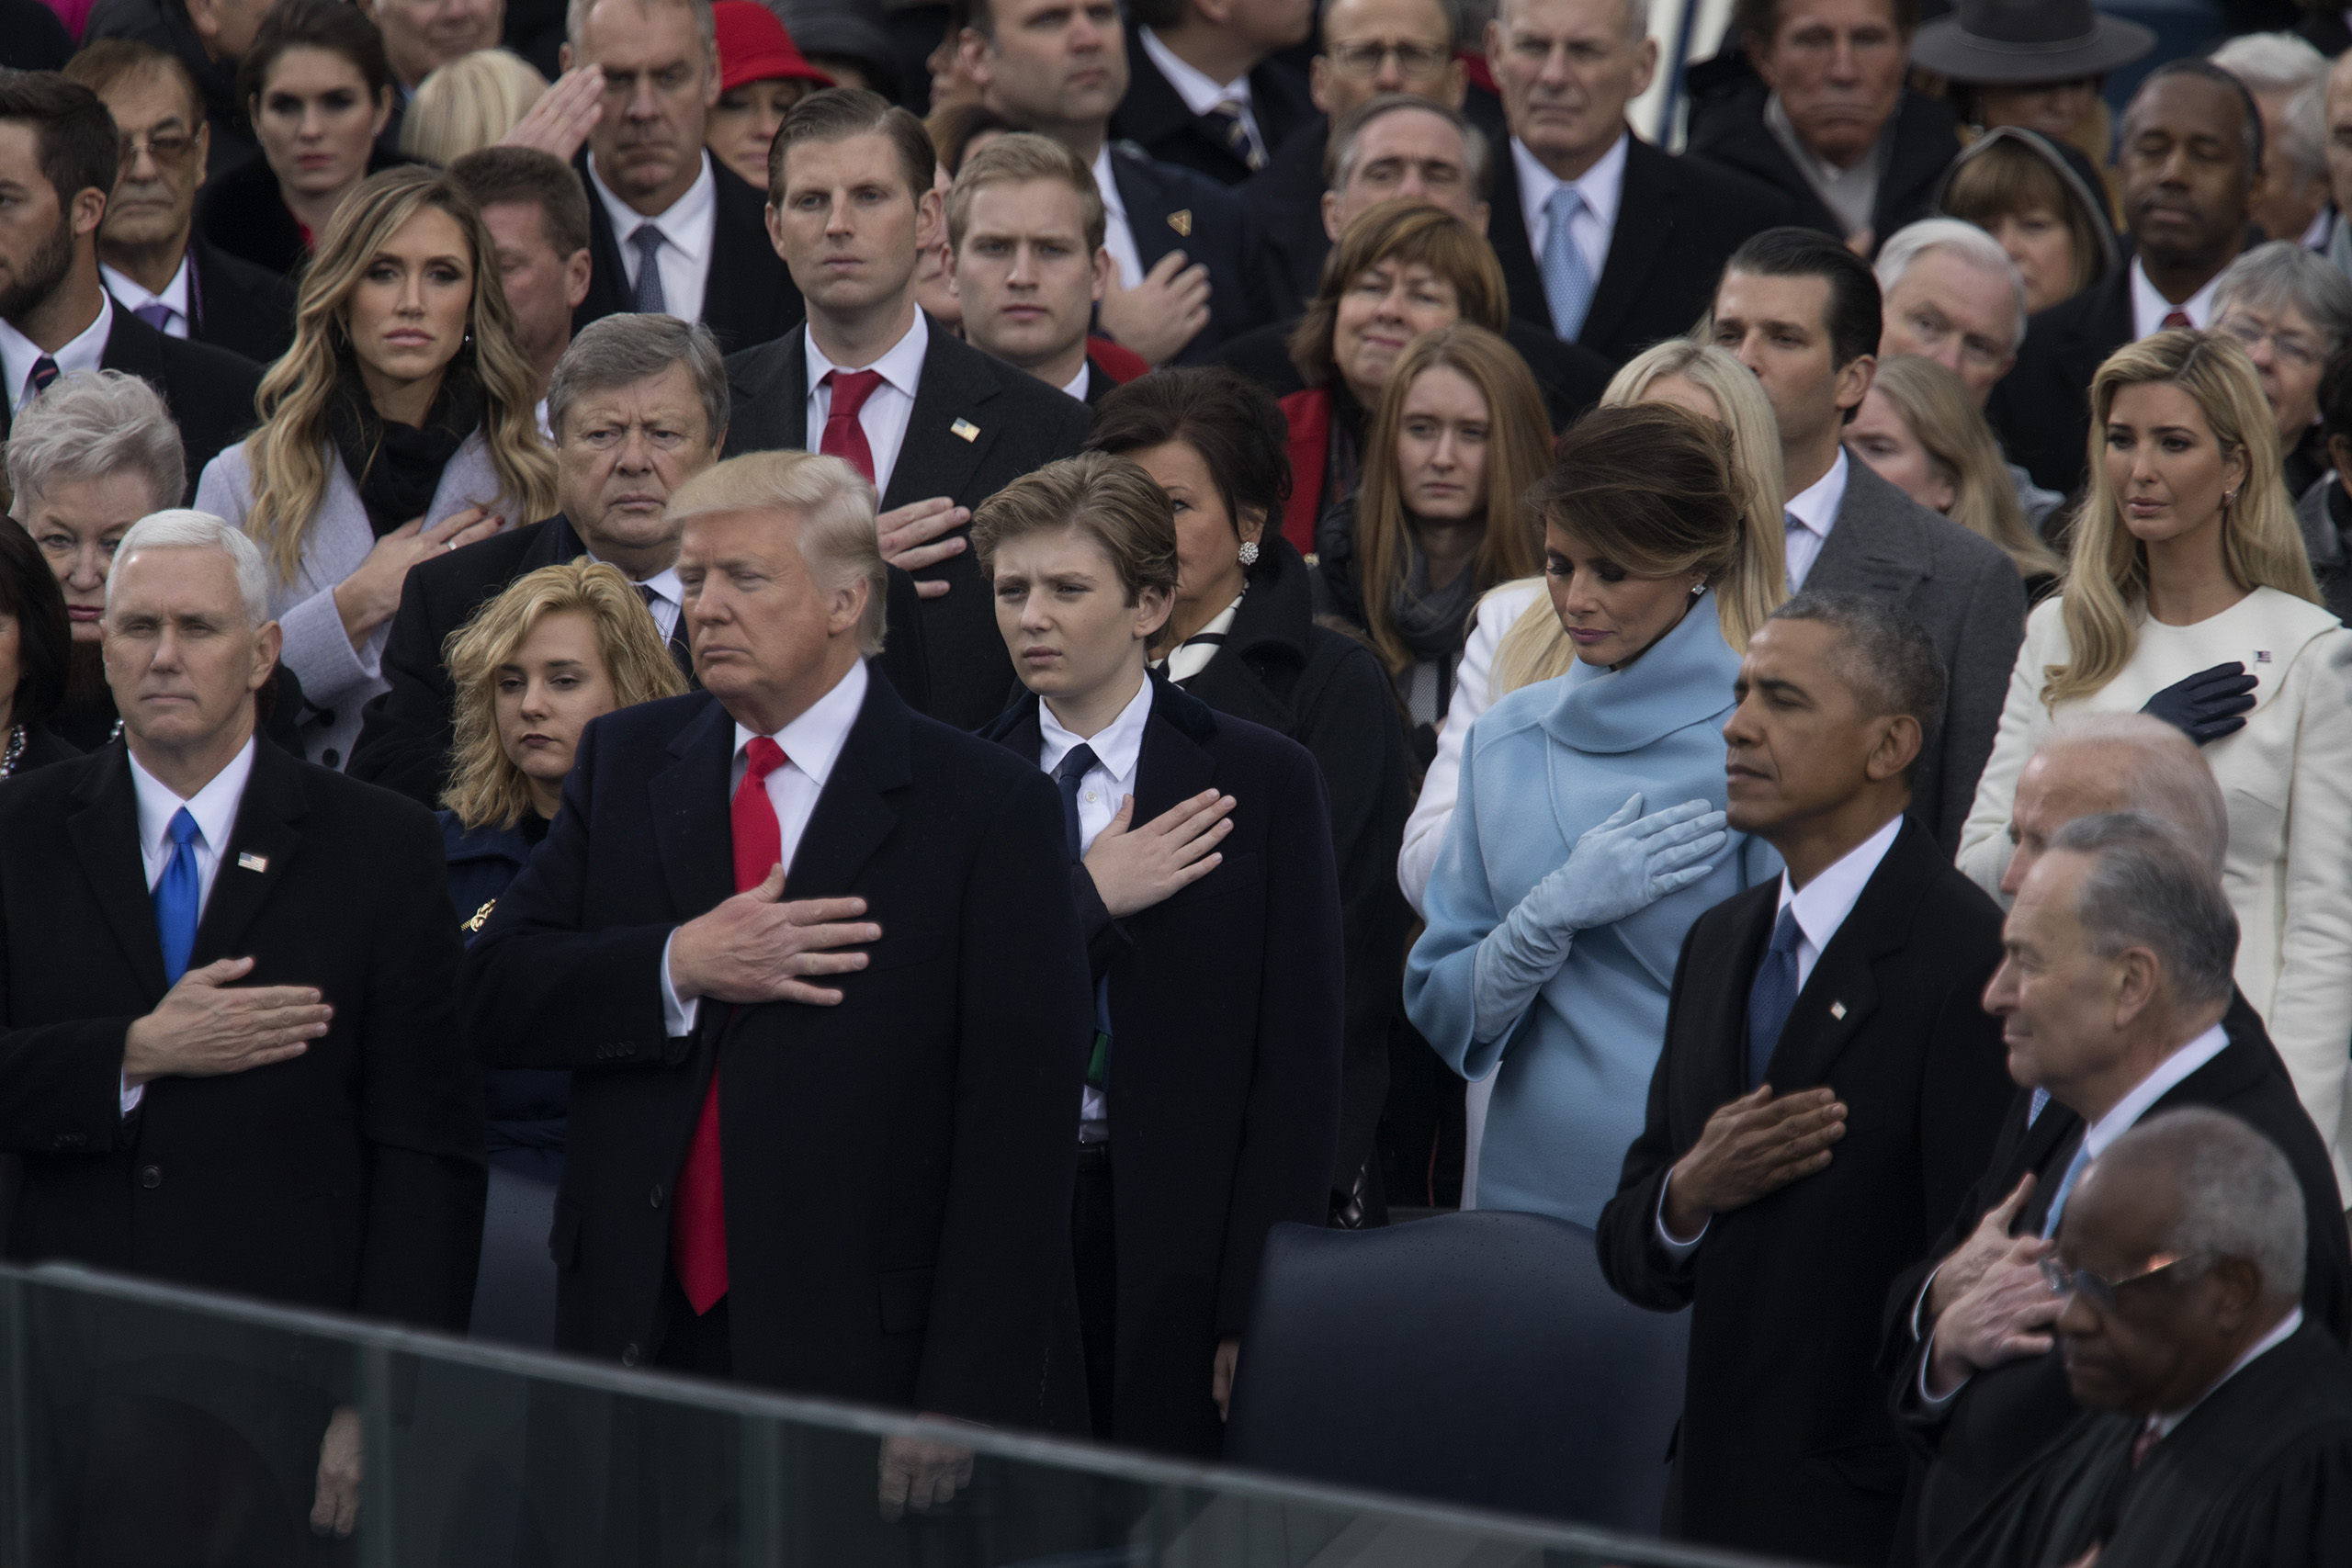 At the inauguration of Donald Trump who was sworn in as the 45th President of the United States in Washington, on Jan. 20, 2017.